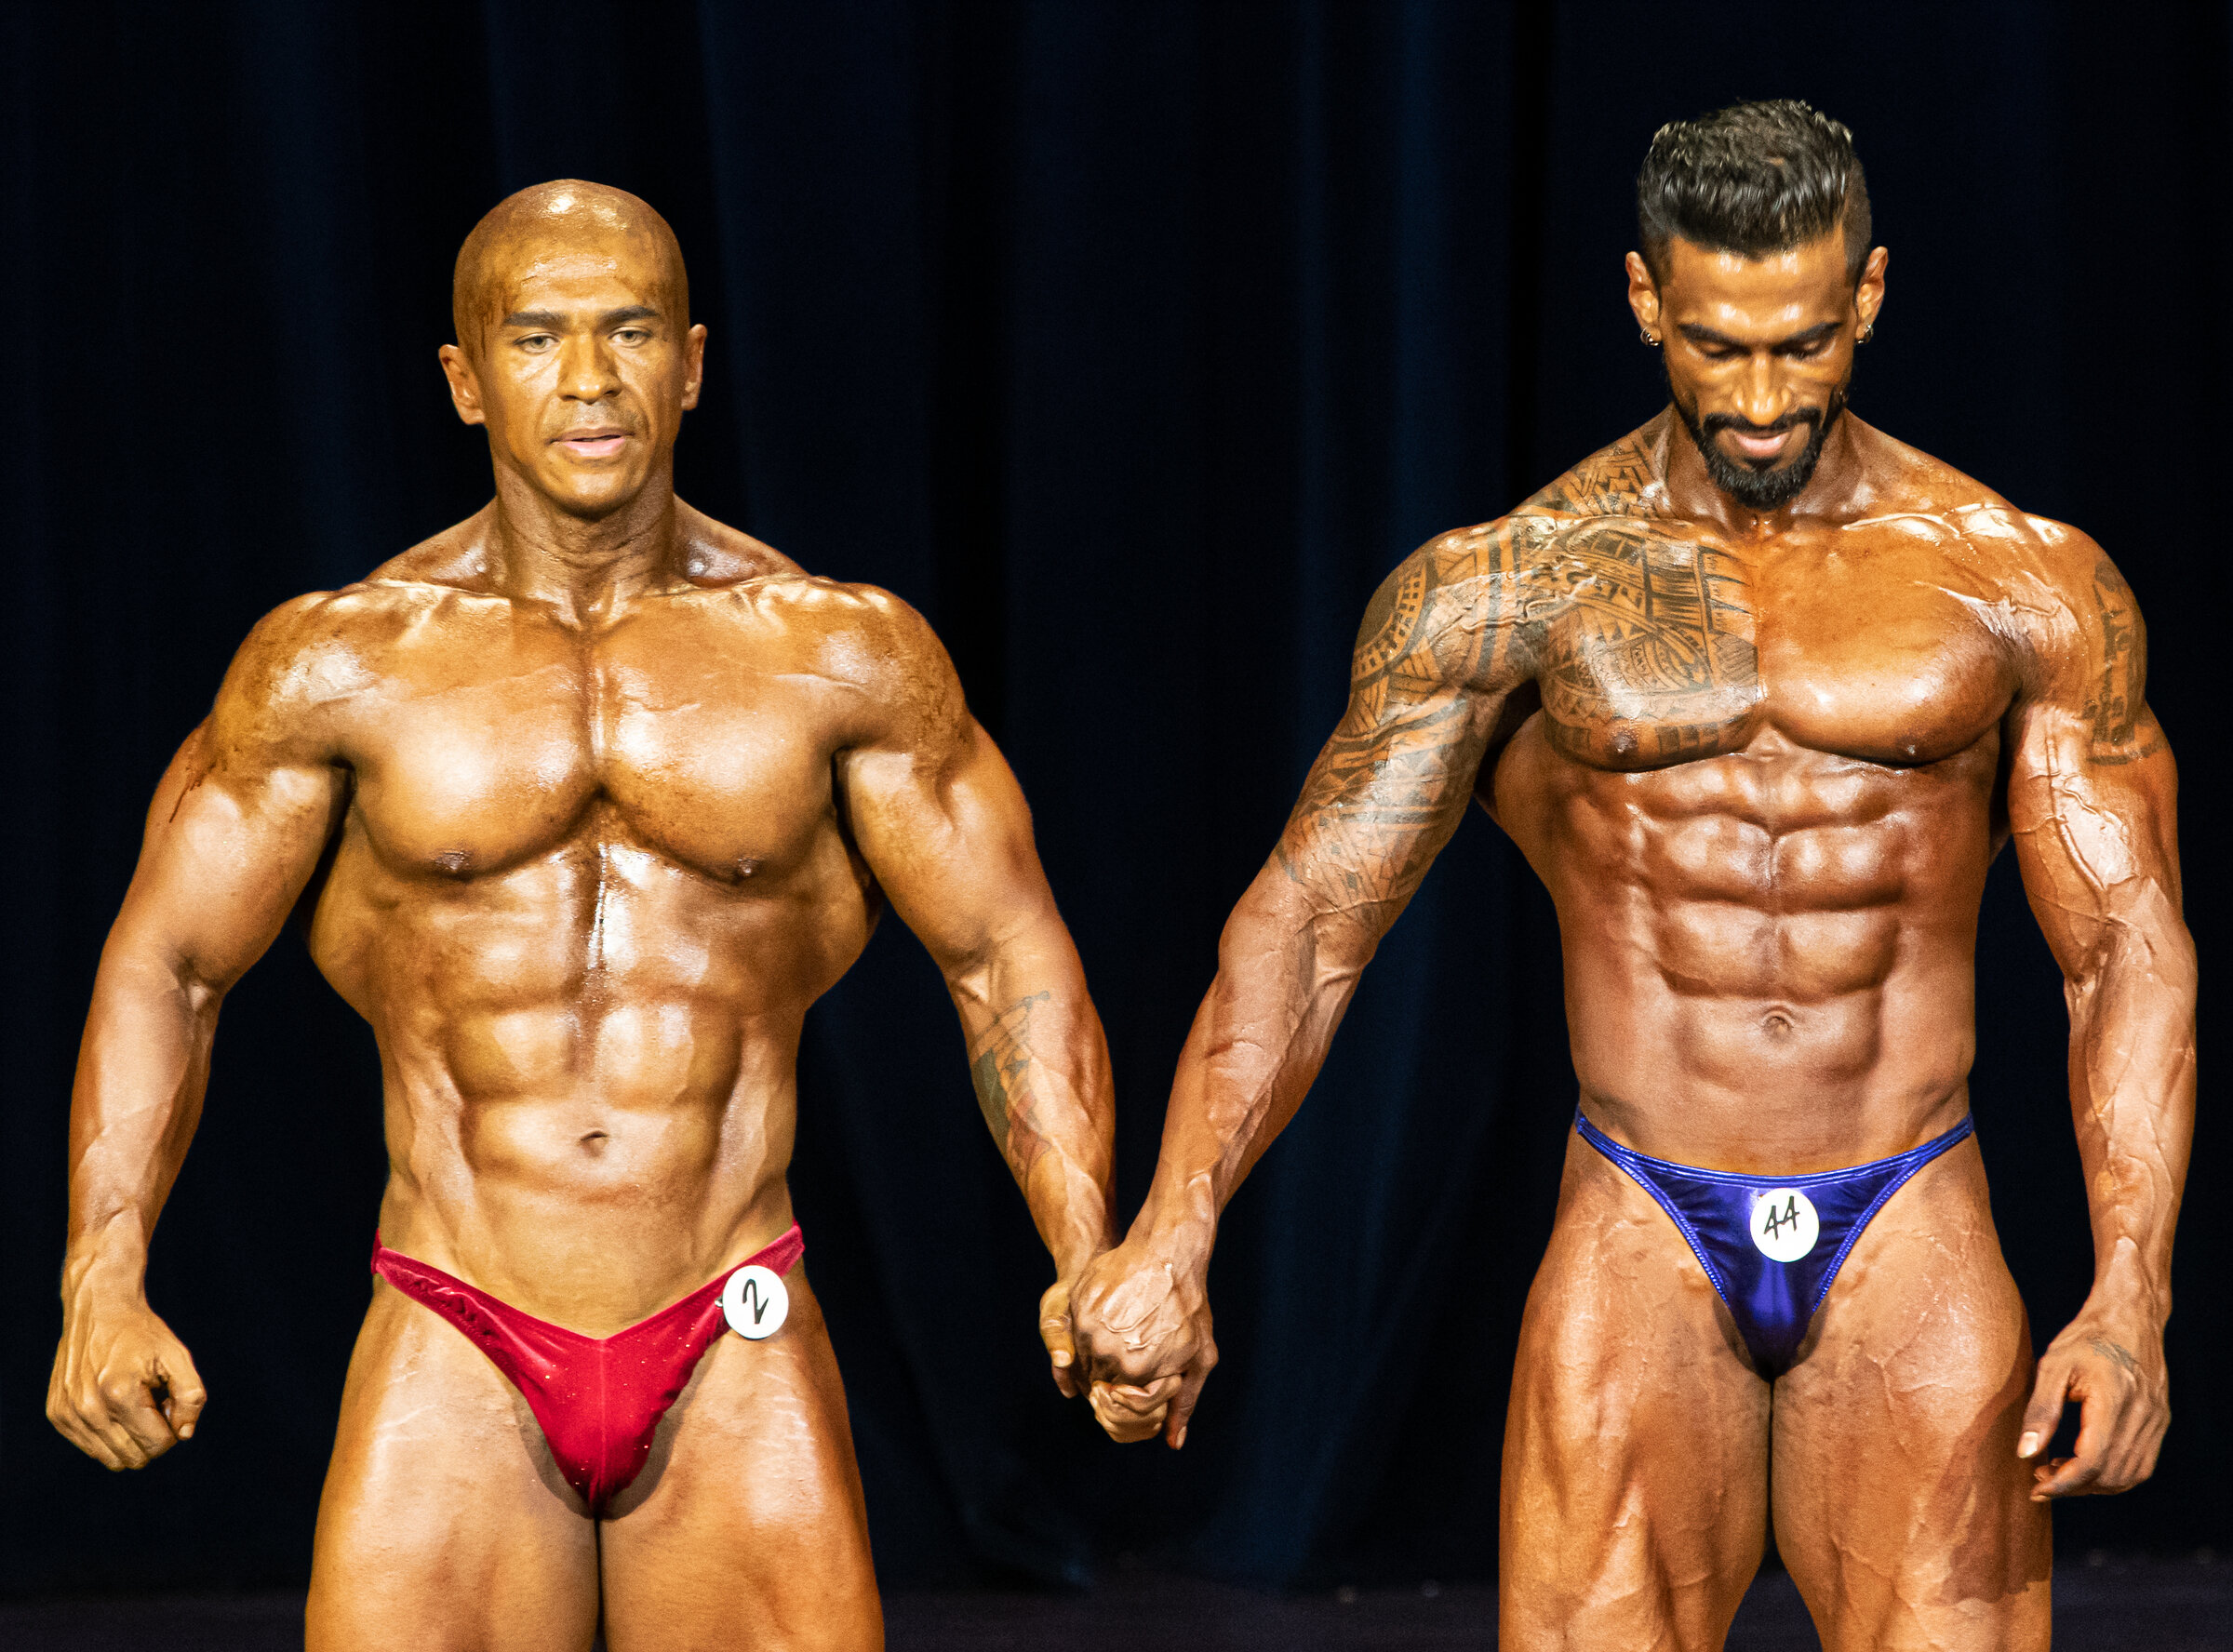 A Panamanian and Malaysian competitor holds hands during the IFBB Regional Bodybuilding Finals at the Kreta Ayer People's Theatre.